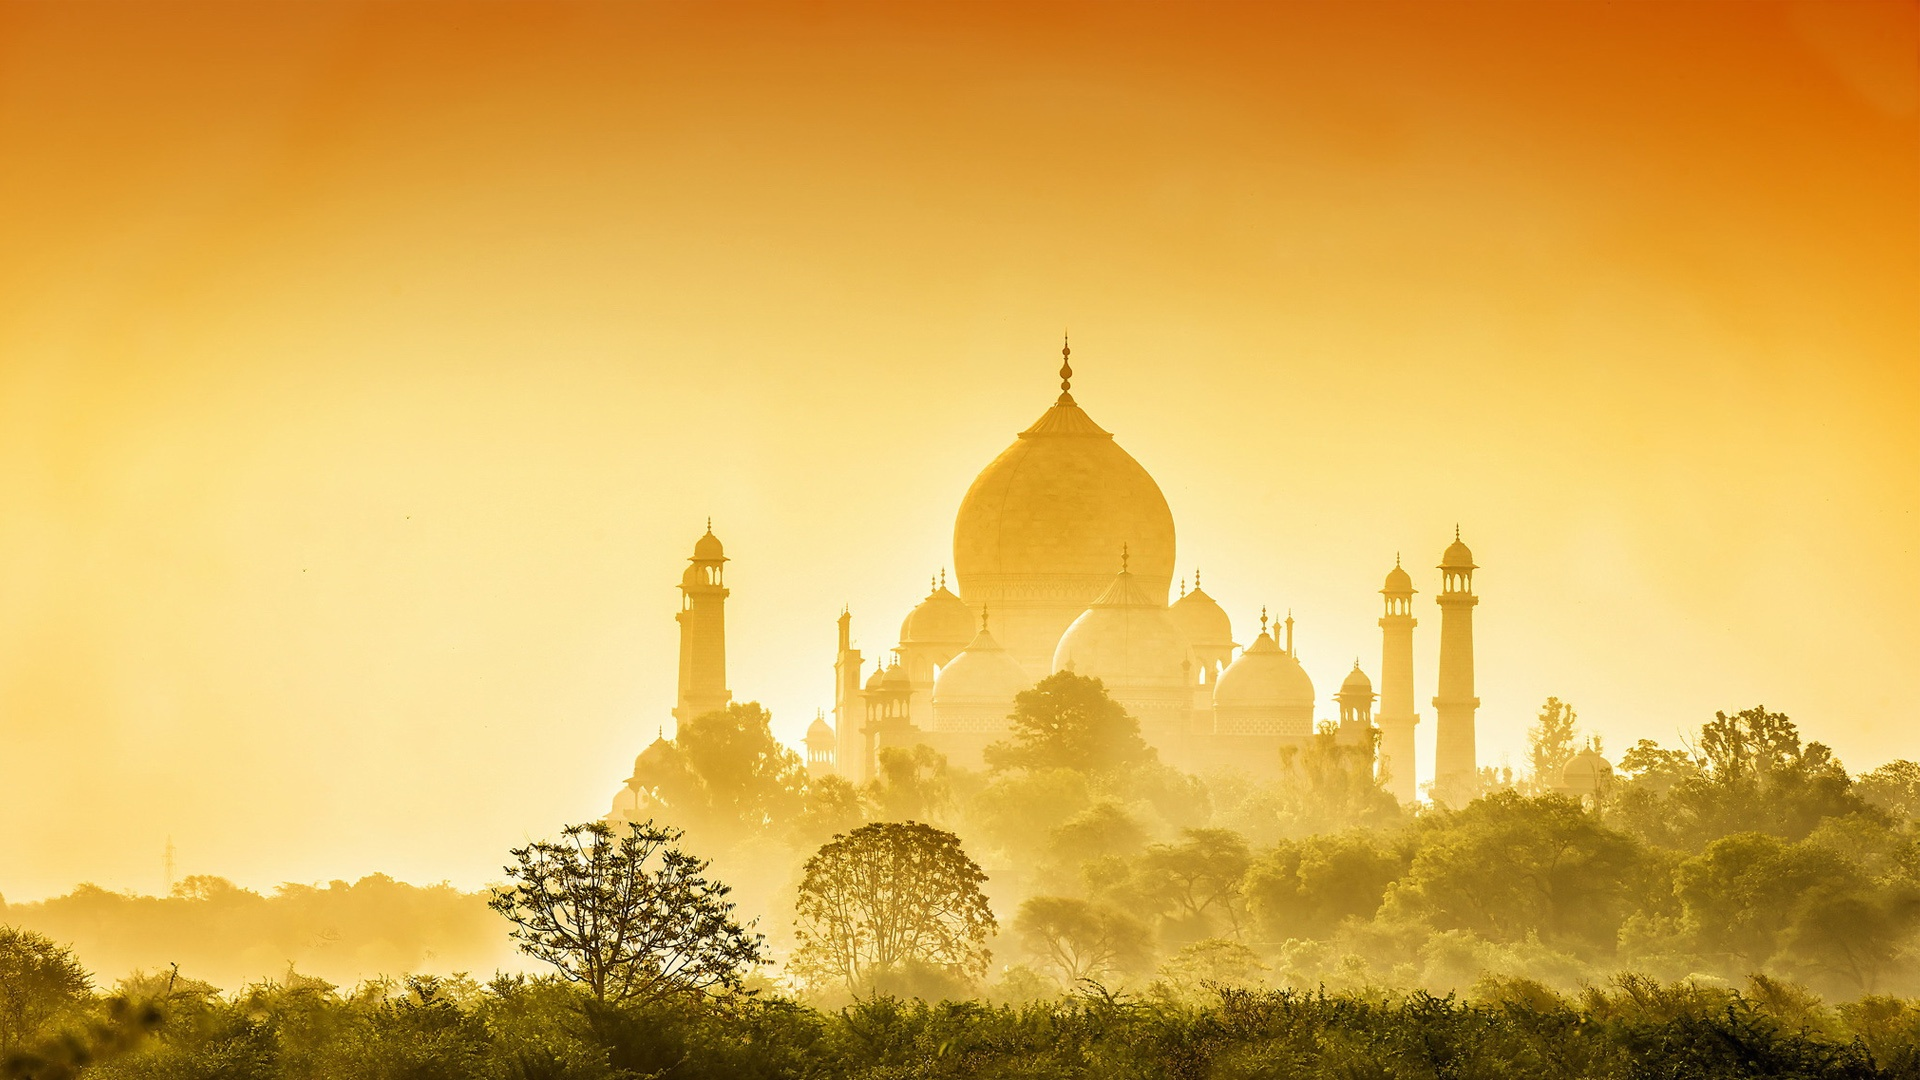 Golden Taj Mahal Wallpapers In Jpg Format For Free Download